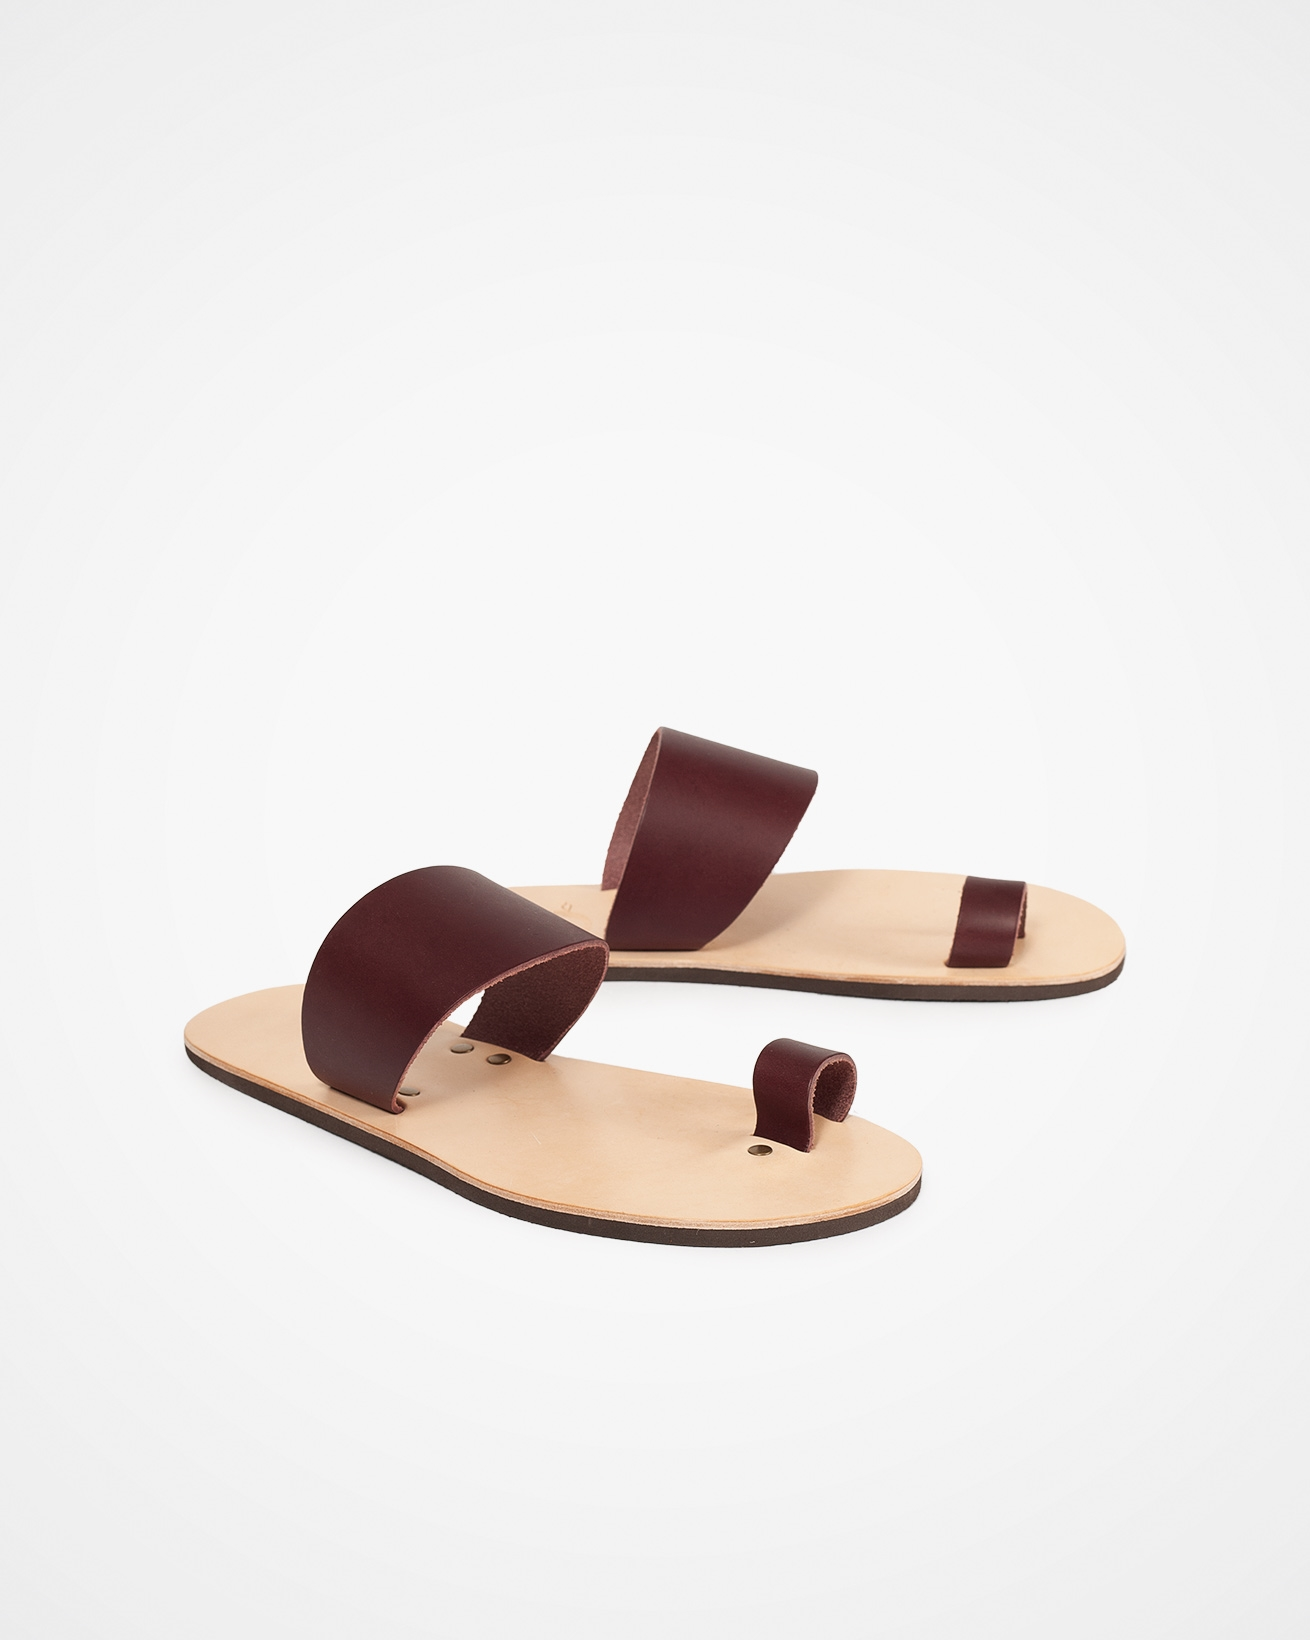 7695_celtic-toe-strap-sandal_sloeberry_pair.jpg